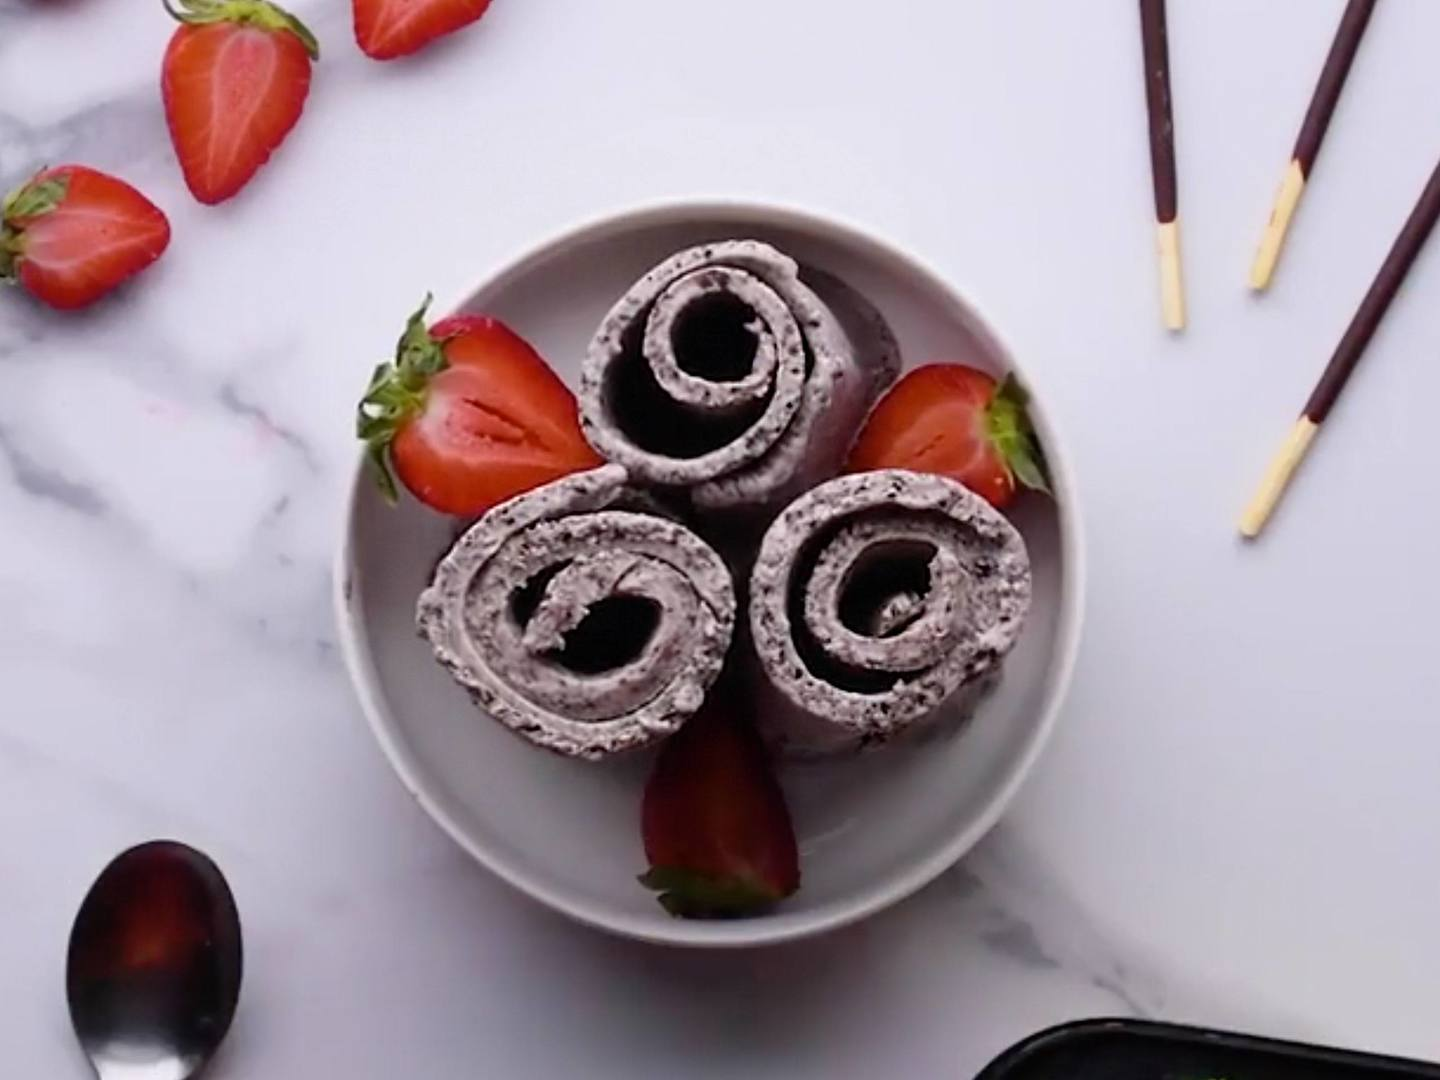 Rolled Ice Cream Dessert Recipe